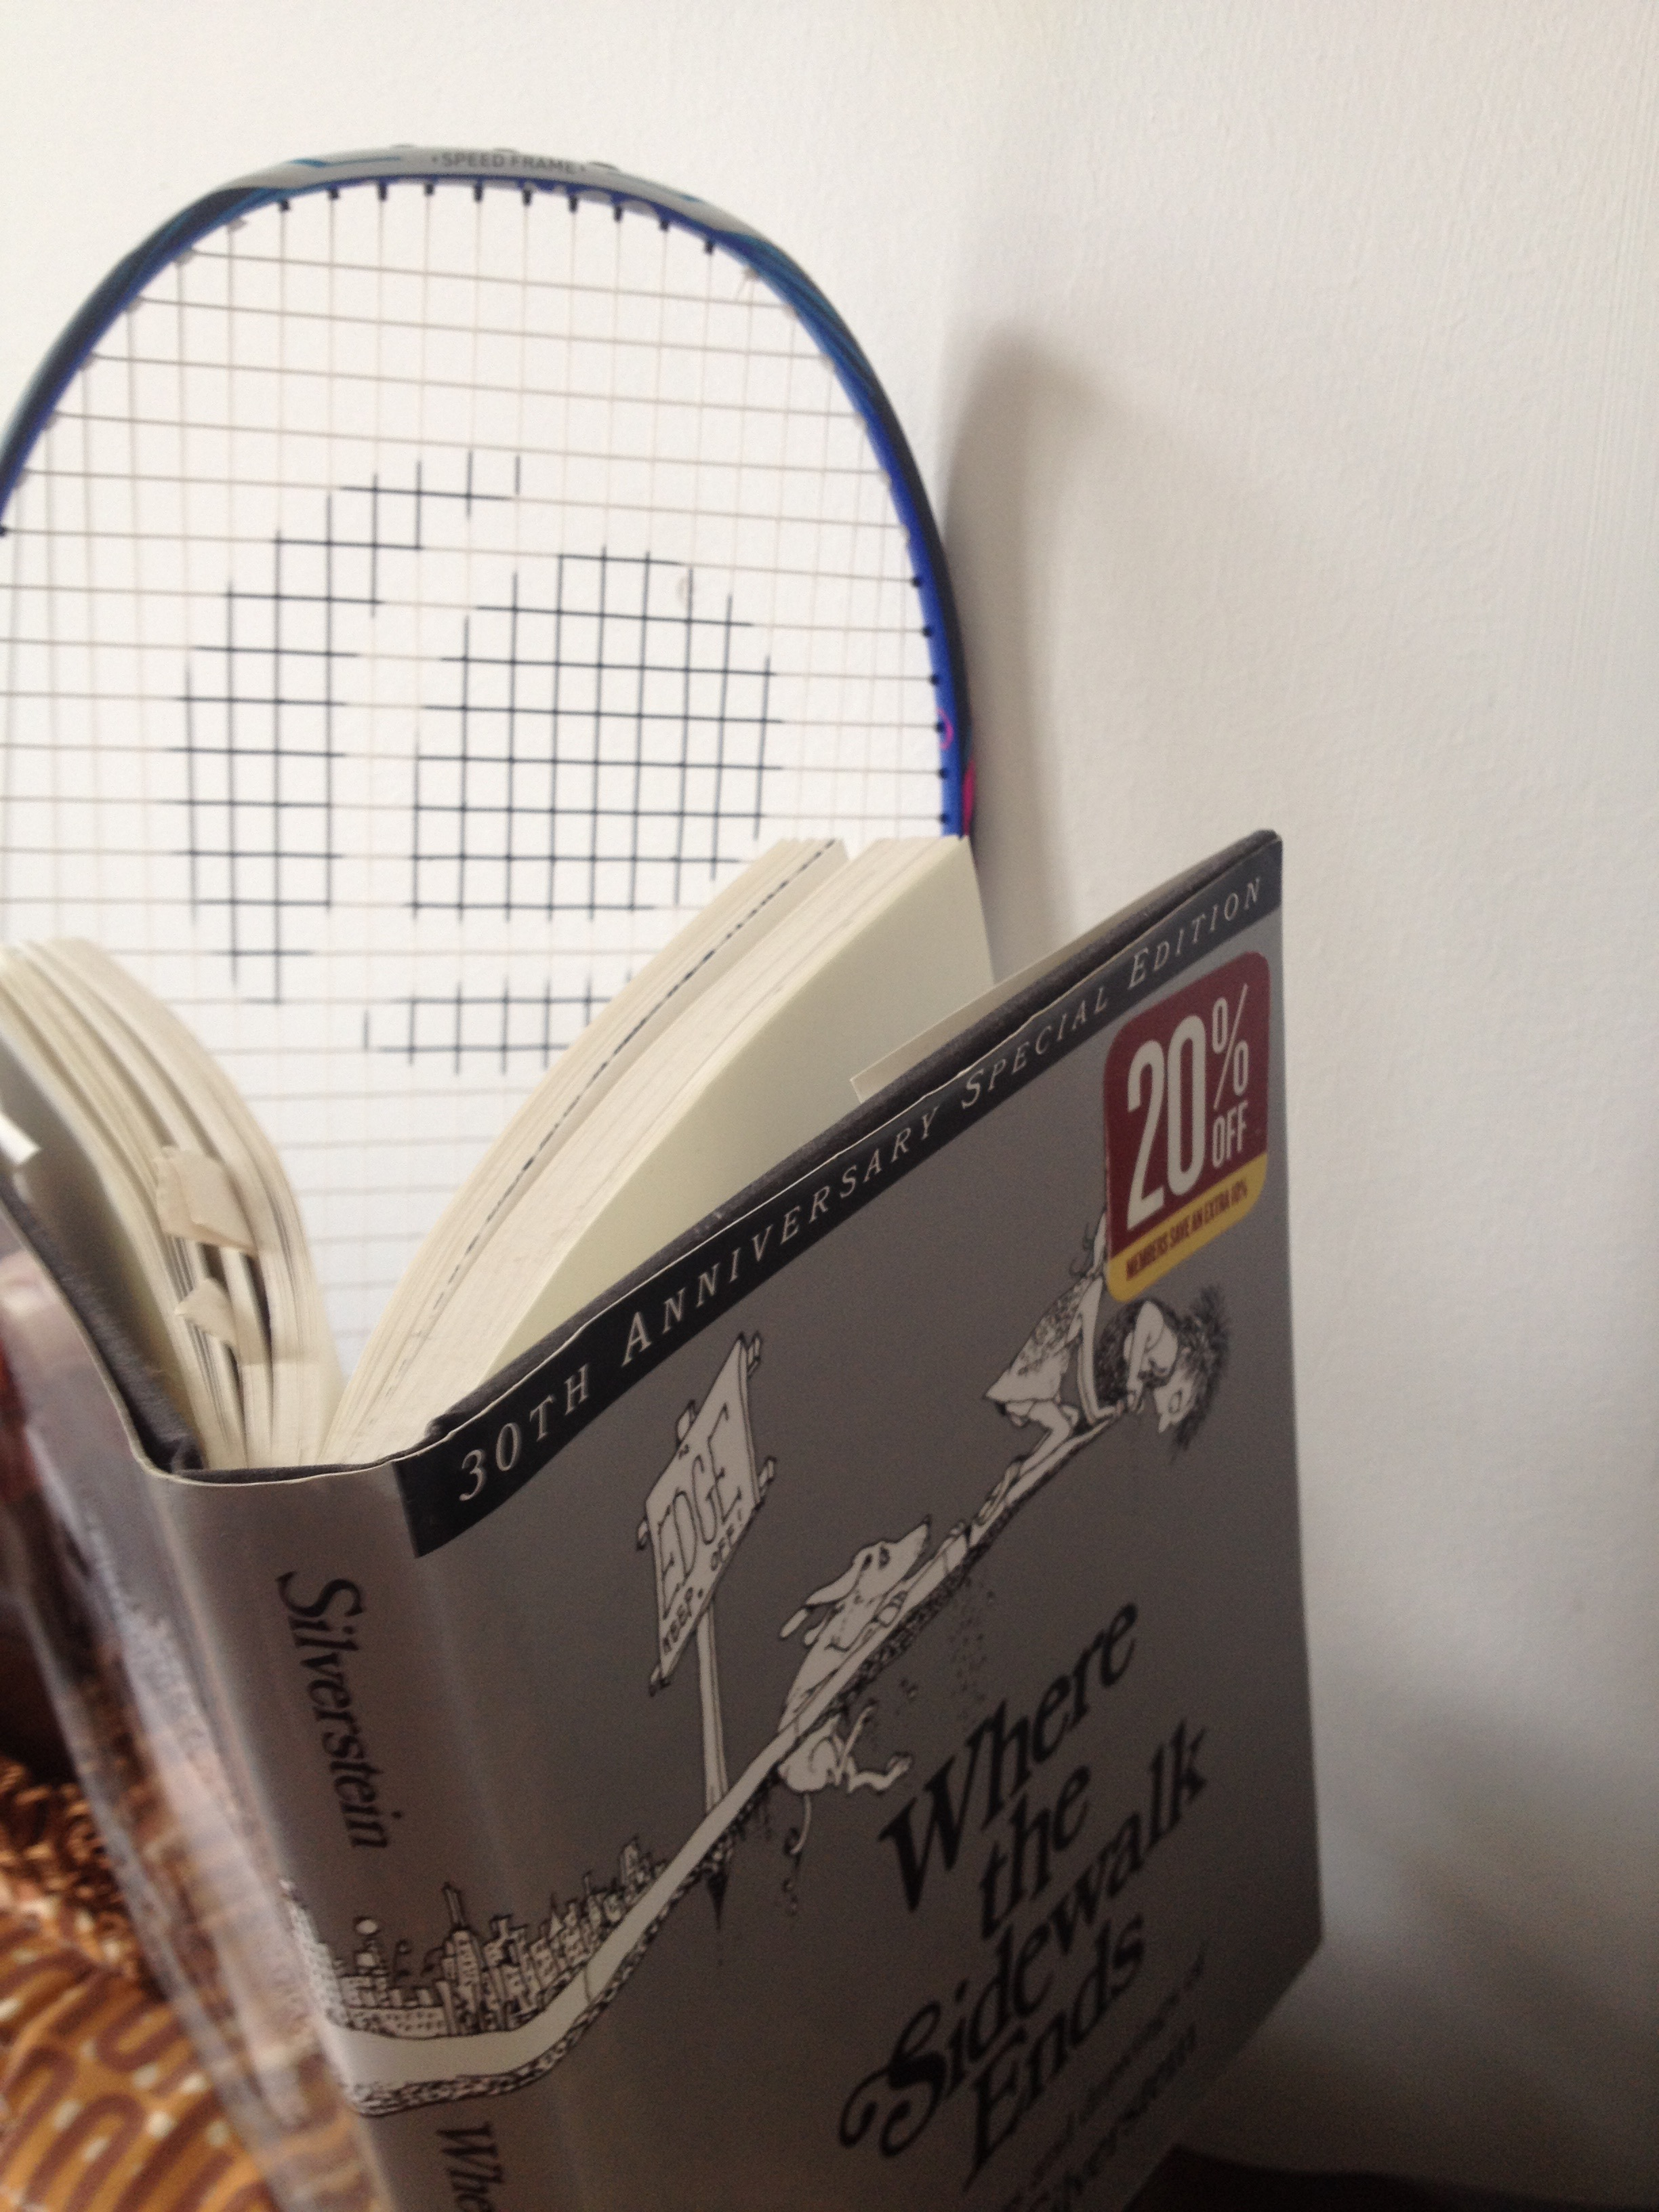 After a snack, my racket likes to read a little poetry to keep it's mind fresh.